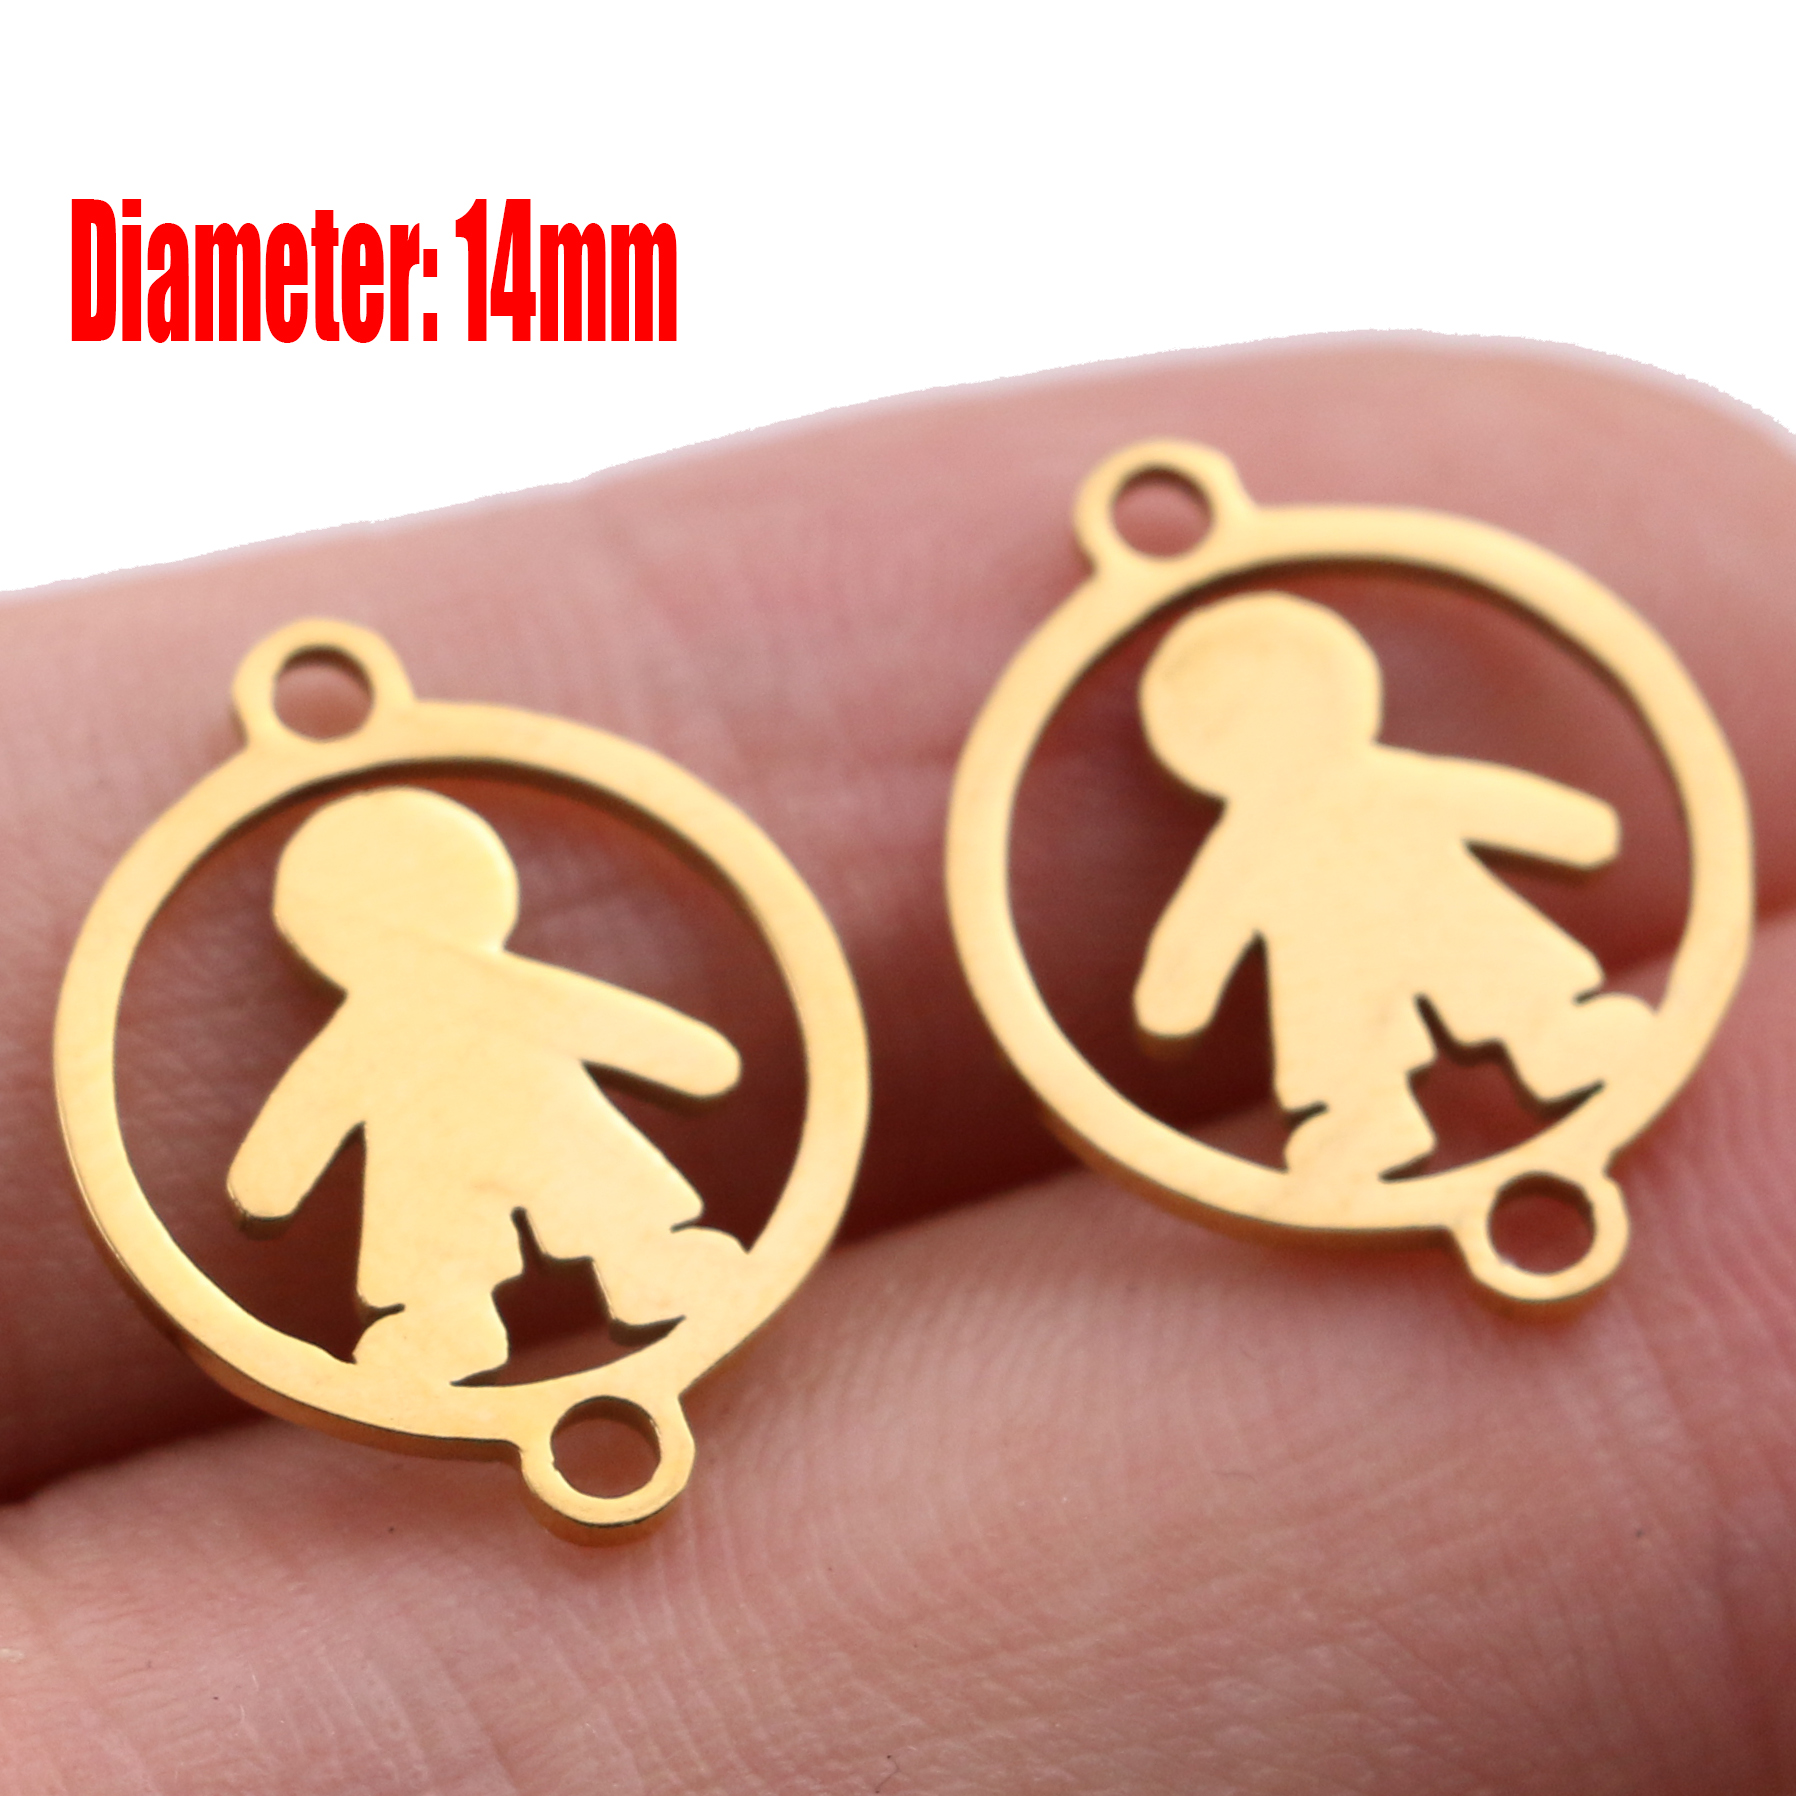 5pcs Family Chain Stainless Steel Pendant Necklace Parents and Children Necklaces Gold/steel Jewelry Gift for Mom Dad New Twice - Цвет: Gold 23